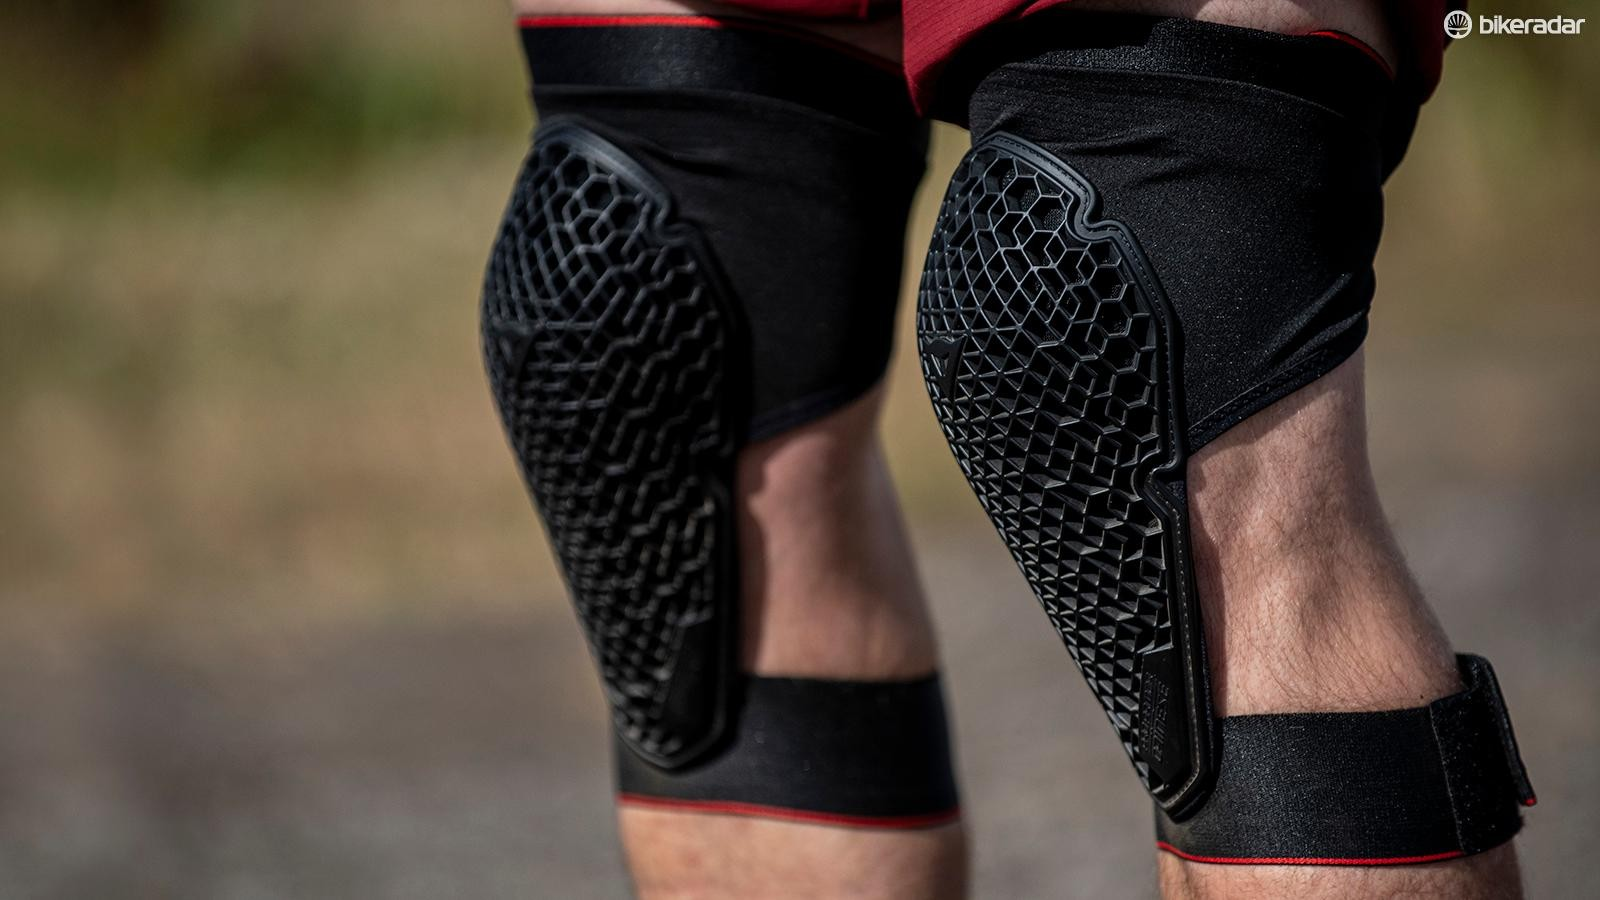 Dainese's Trail Skins 2 Lites are sleeveless versions of its Trail Skins 2 pads